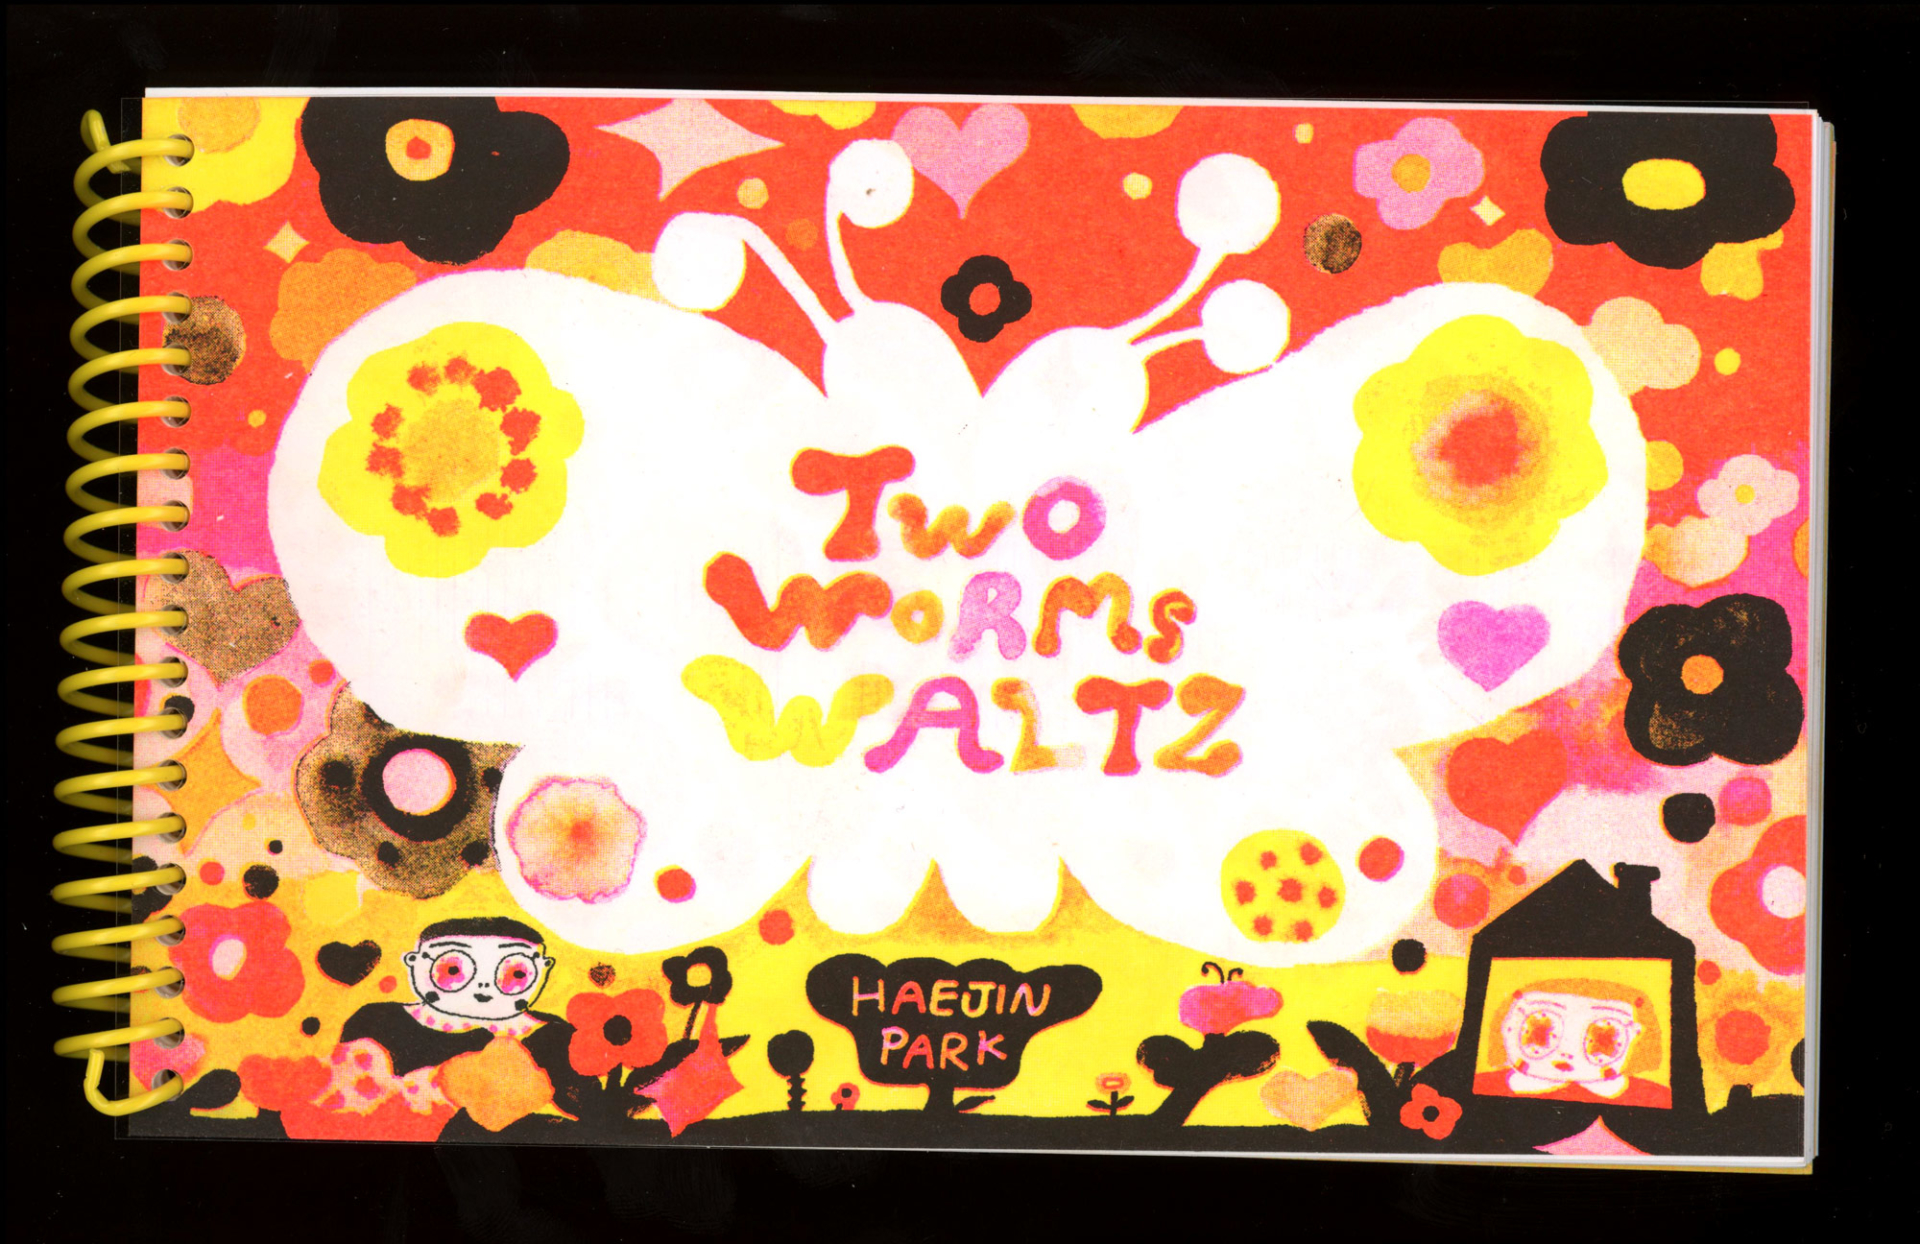 TXTbooks Two Worms Waltz, Haejin Park